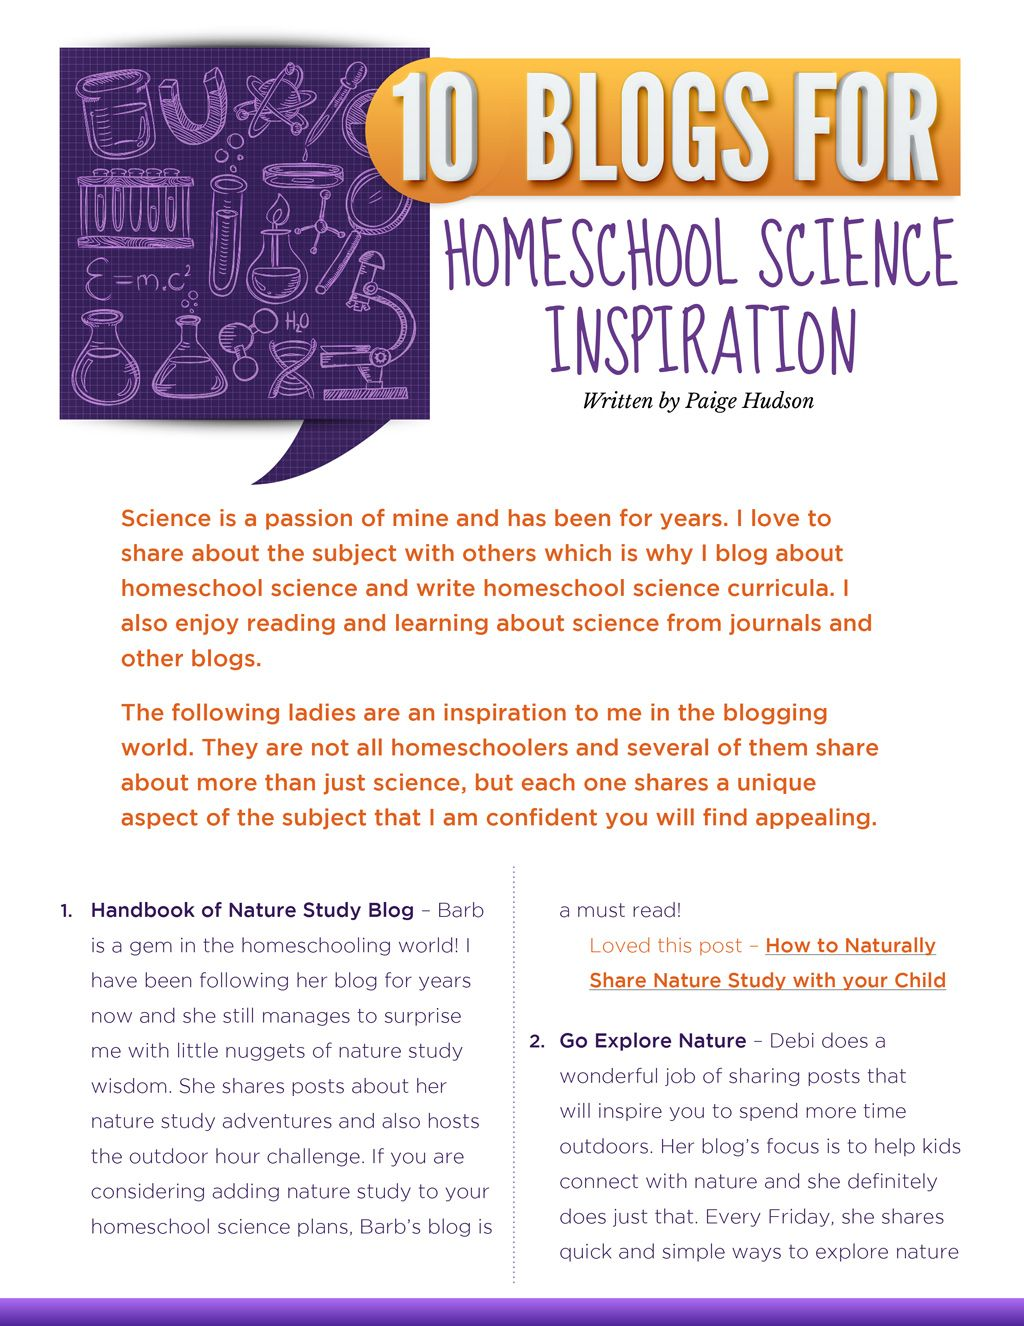 10 Blogs For Homeschool Science Inspiration